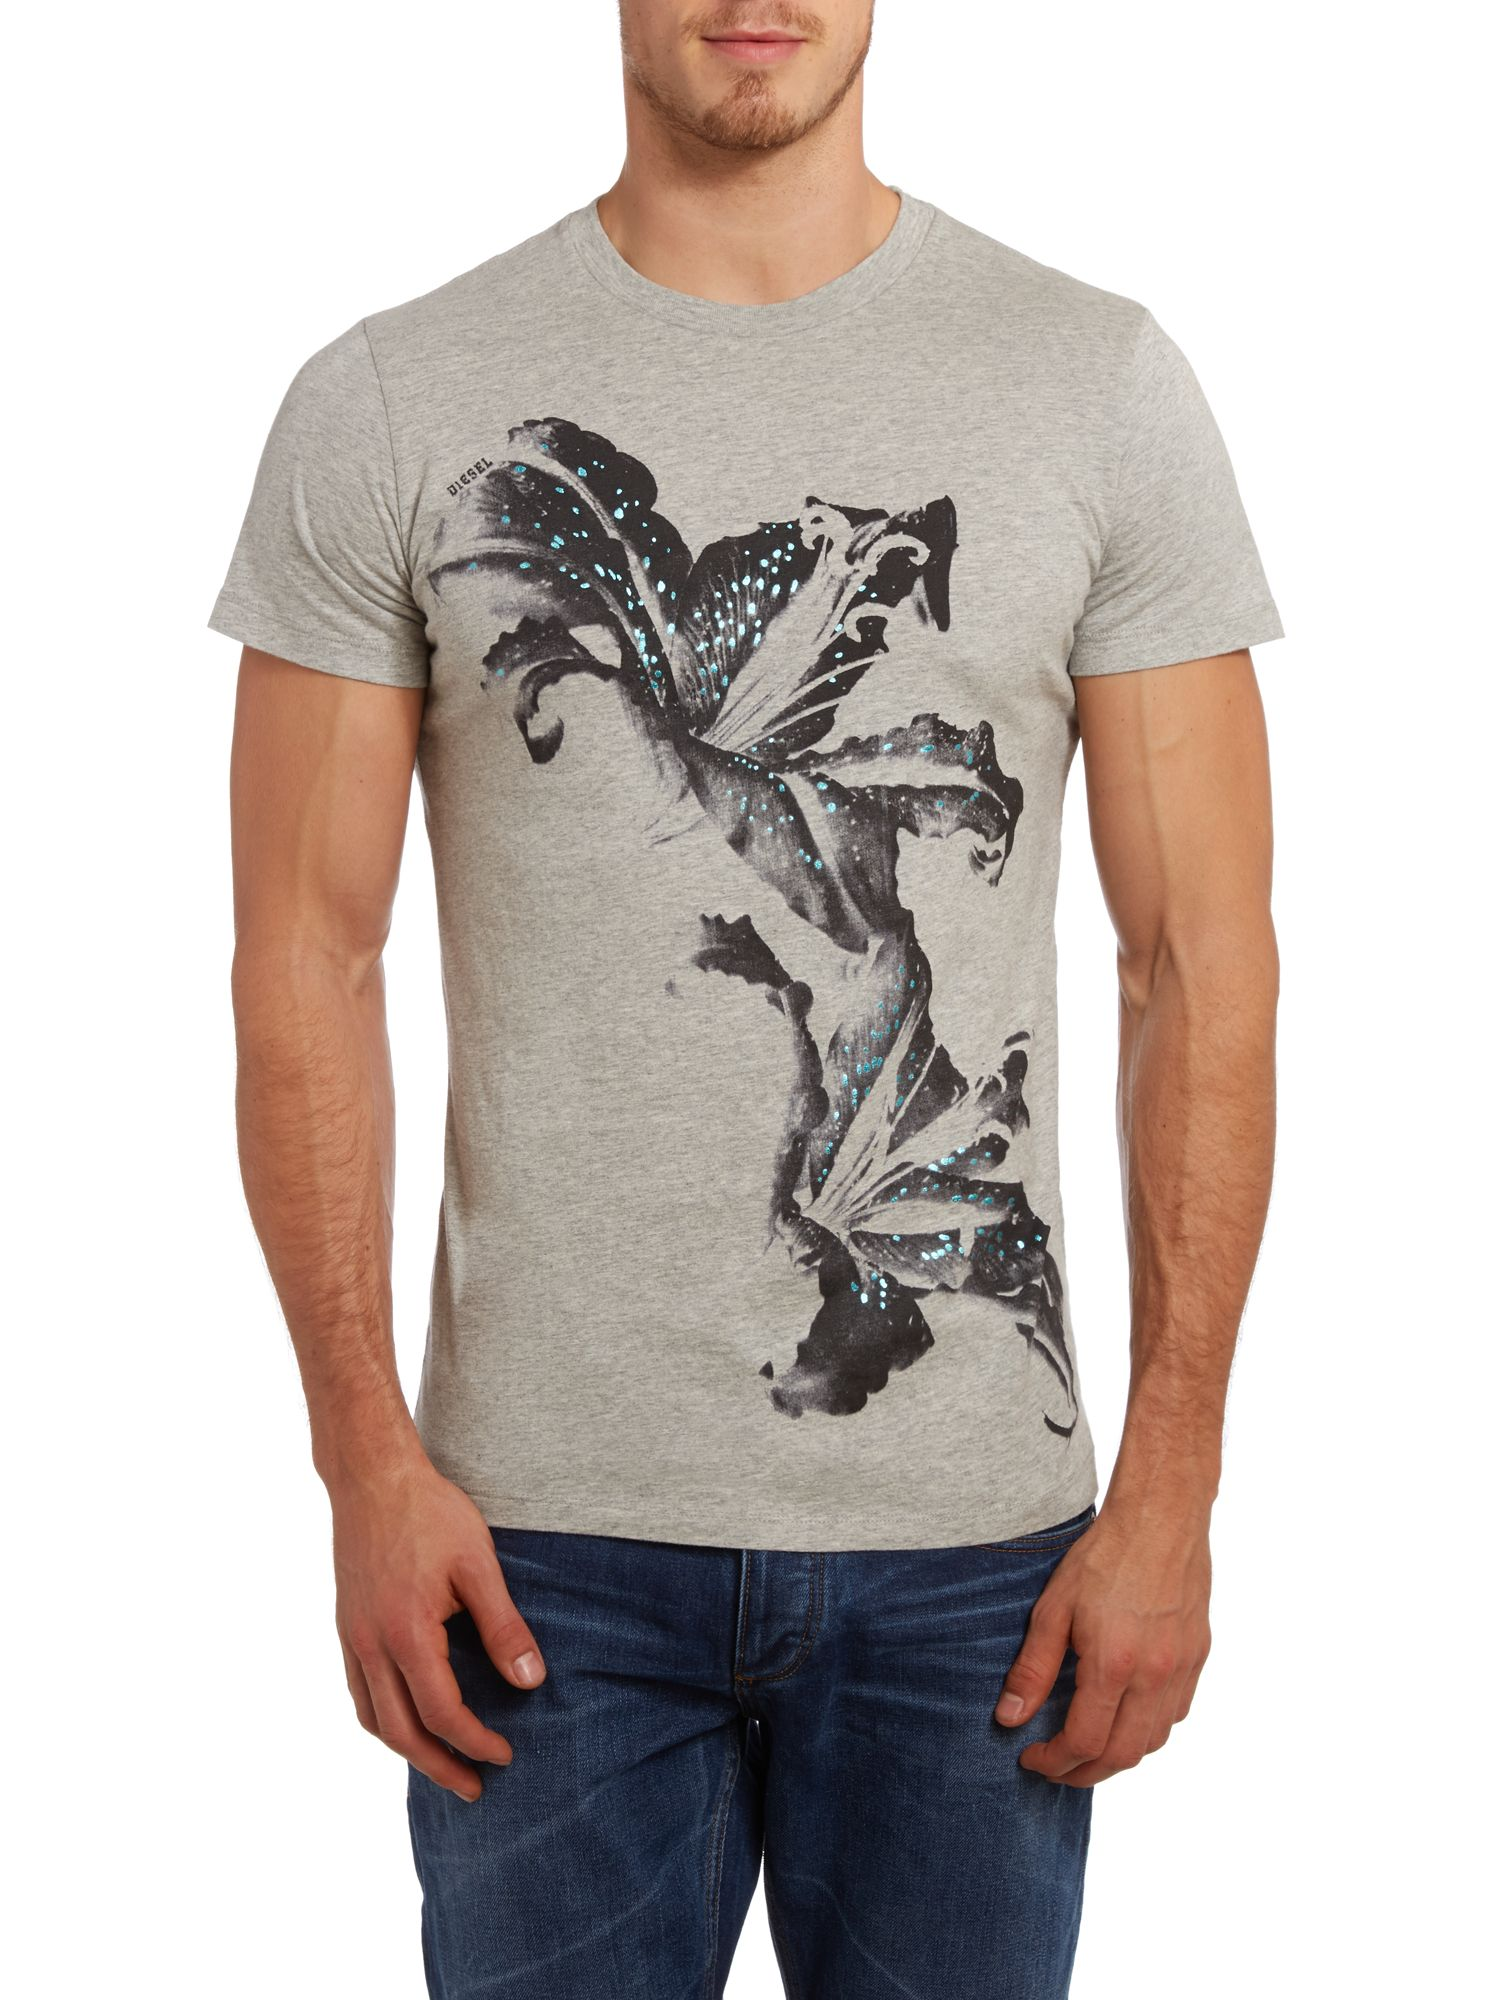 T-tiger large floral printed t shirt